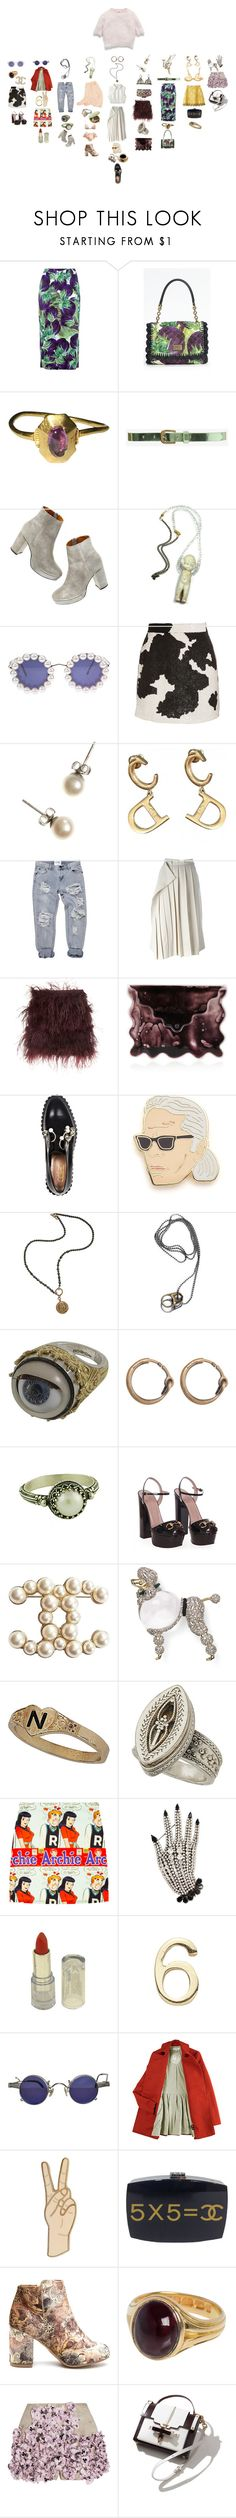 """""""Untitled #2160"""" by duumbblond ❤ liked on Polyvore featuring Dolce&Gabbana, Forever 21, Madewell, Eclectic Shock, Chanel, Ashish, J.Crew, Christian Dior, Yohji Yamamoto and Christopher Kane"""